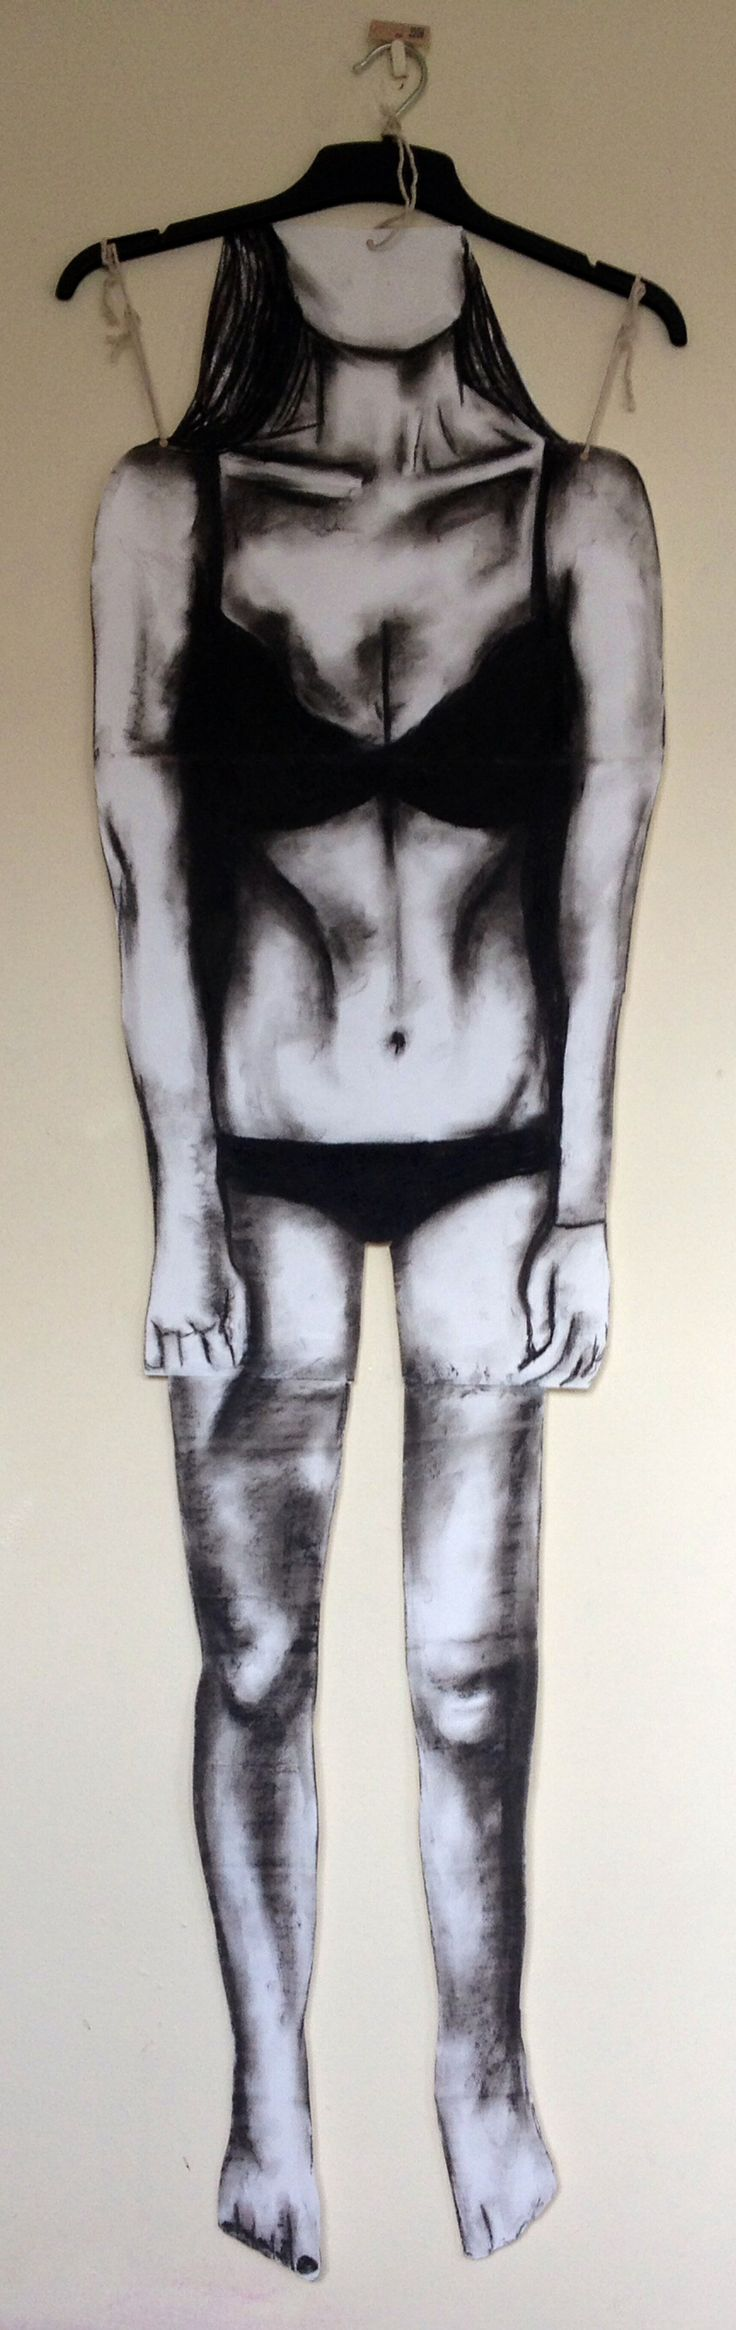 Piece inspired by the theme of body idea for alevel (Btec) art, I used charcoal on a2 paper #anorexia #body